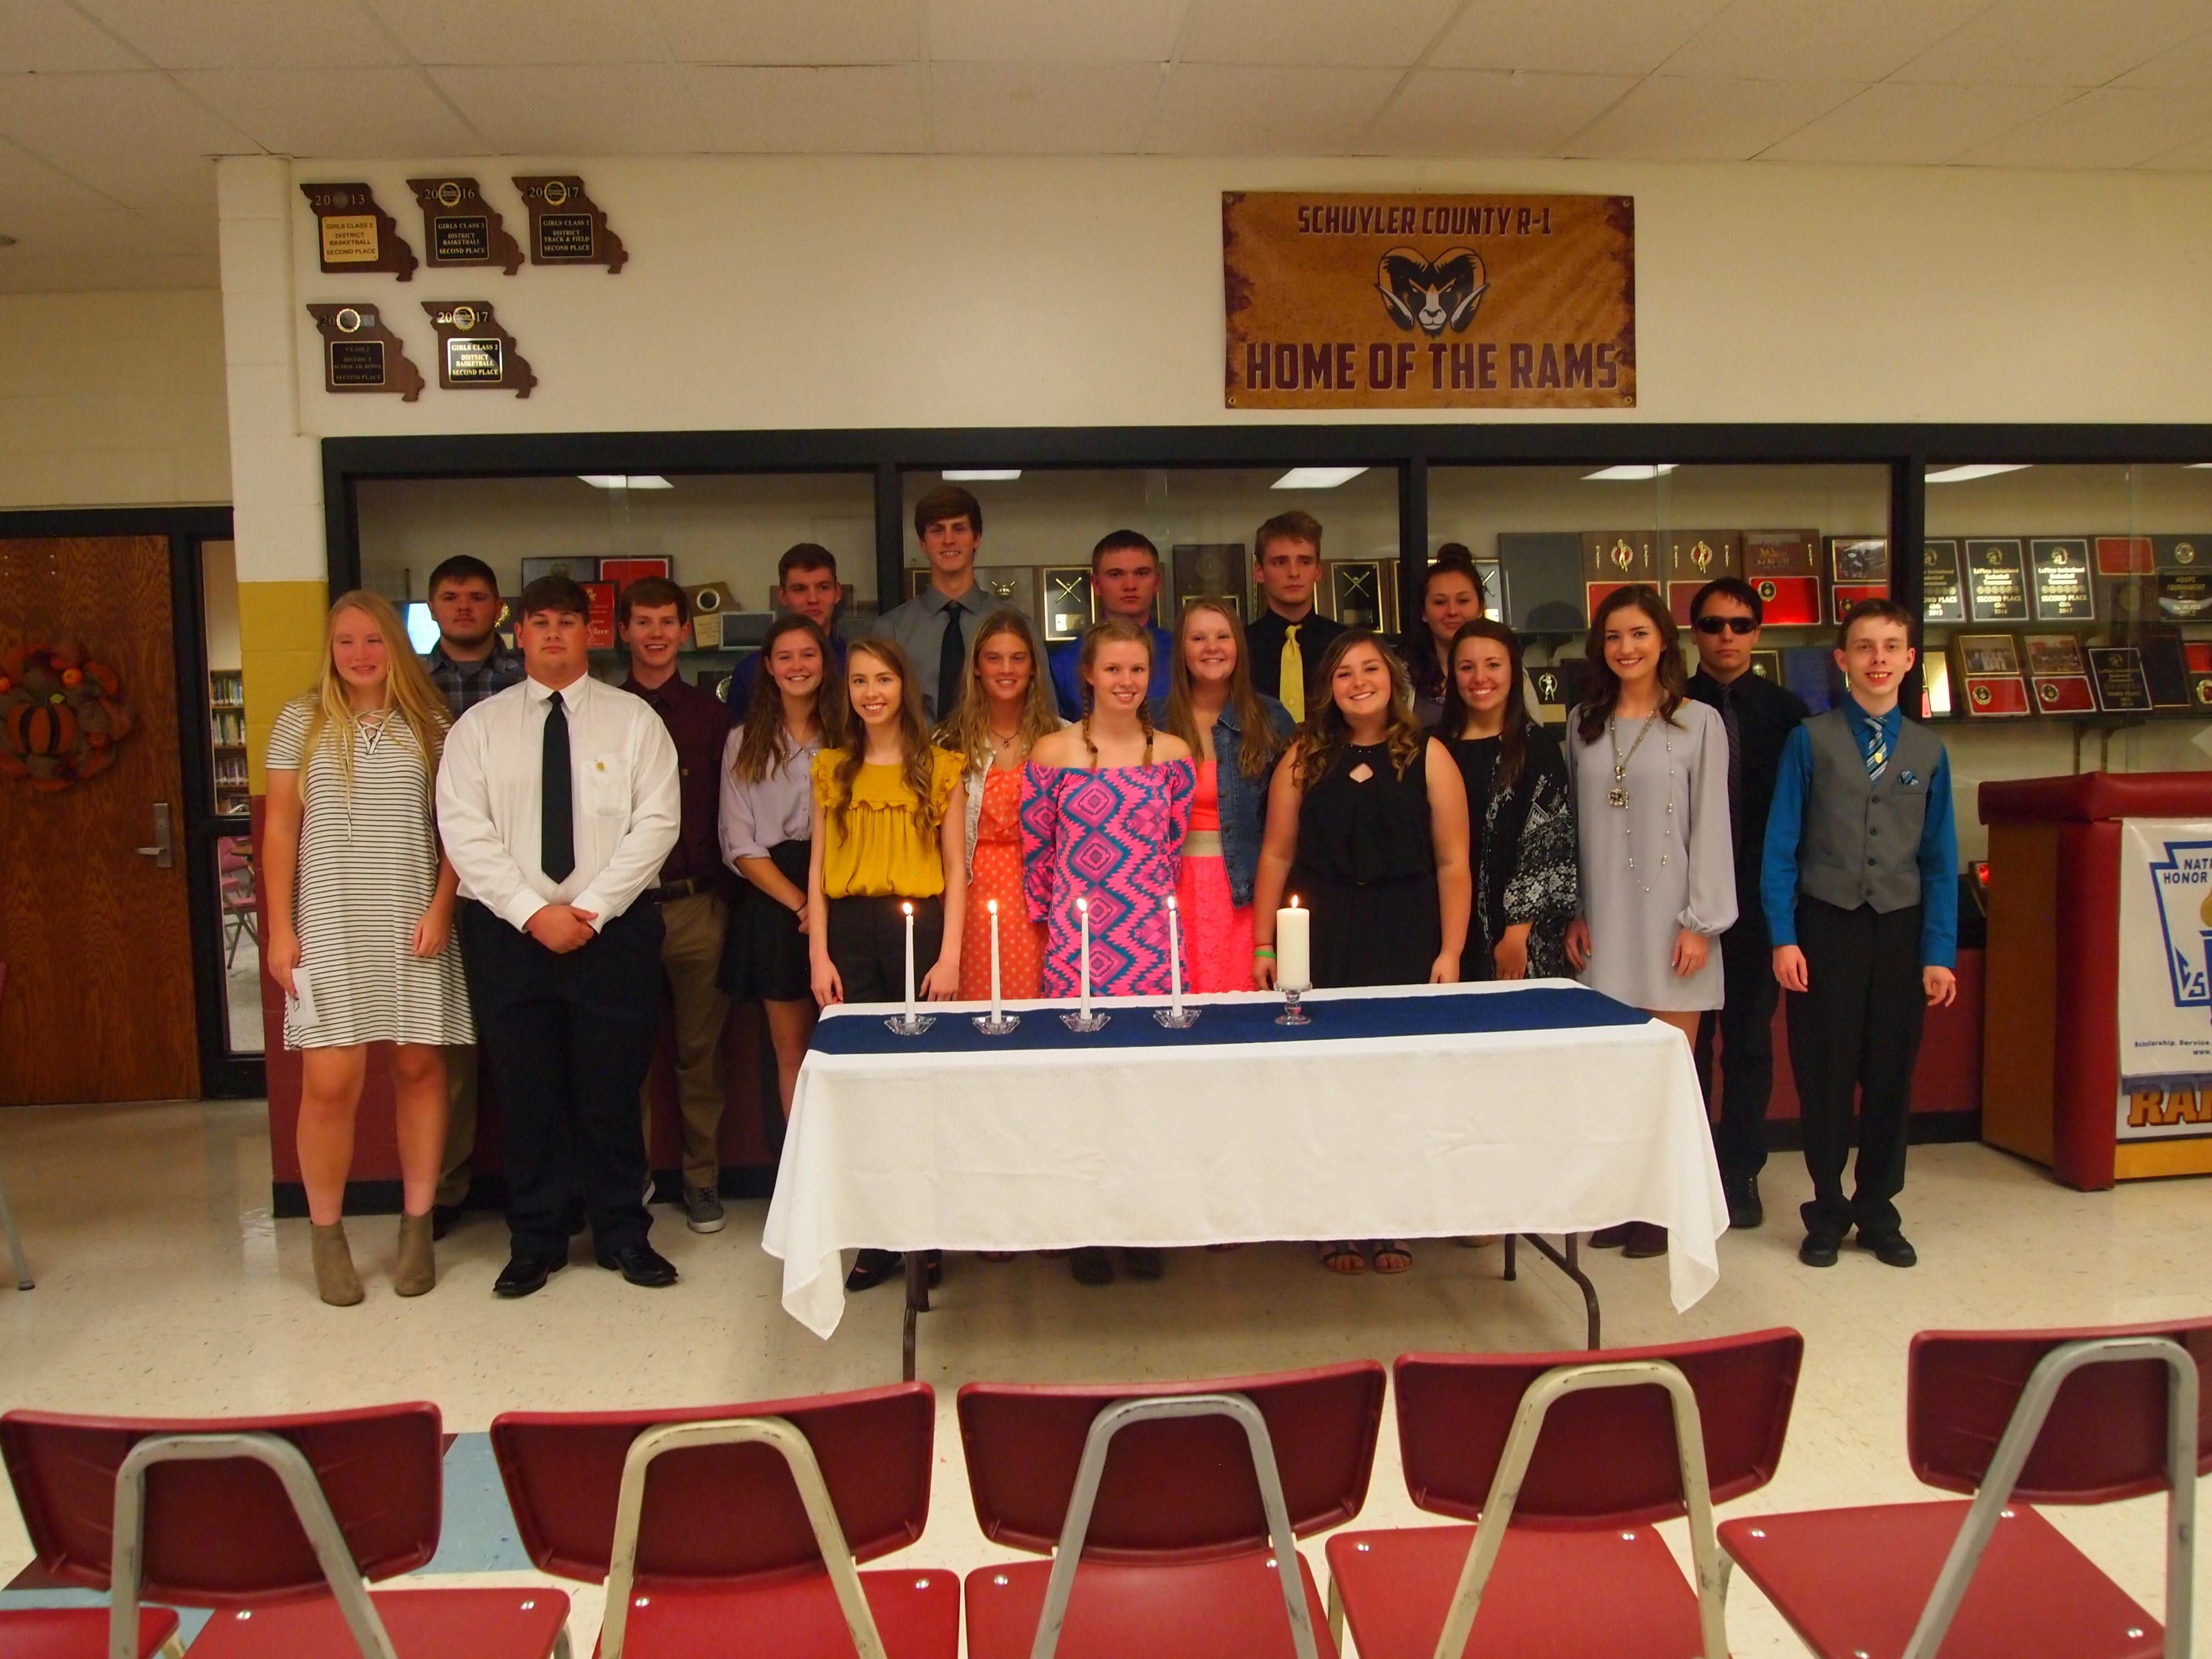 A standing picture of the National Honor Society team